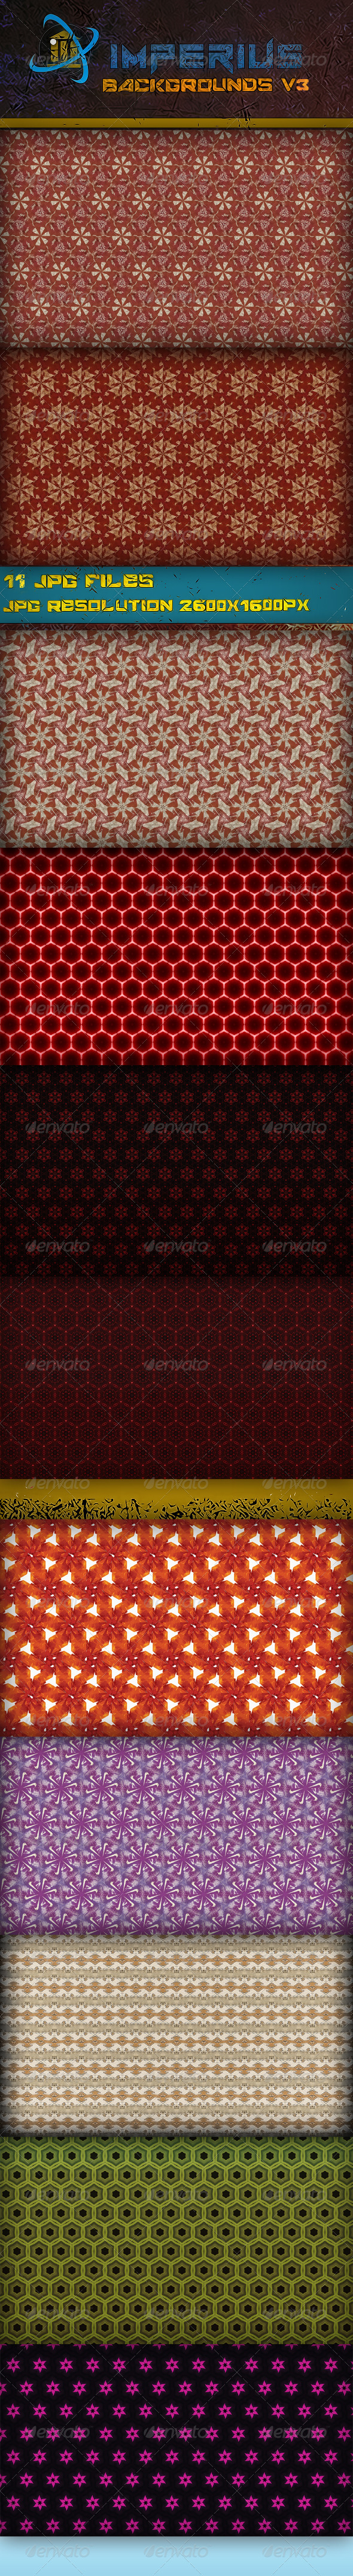 Backgrounds V3 - Patterns Backgrounds